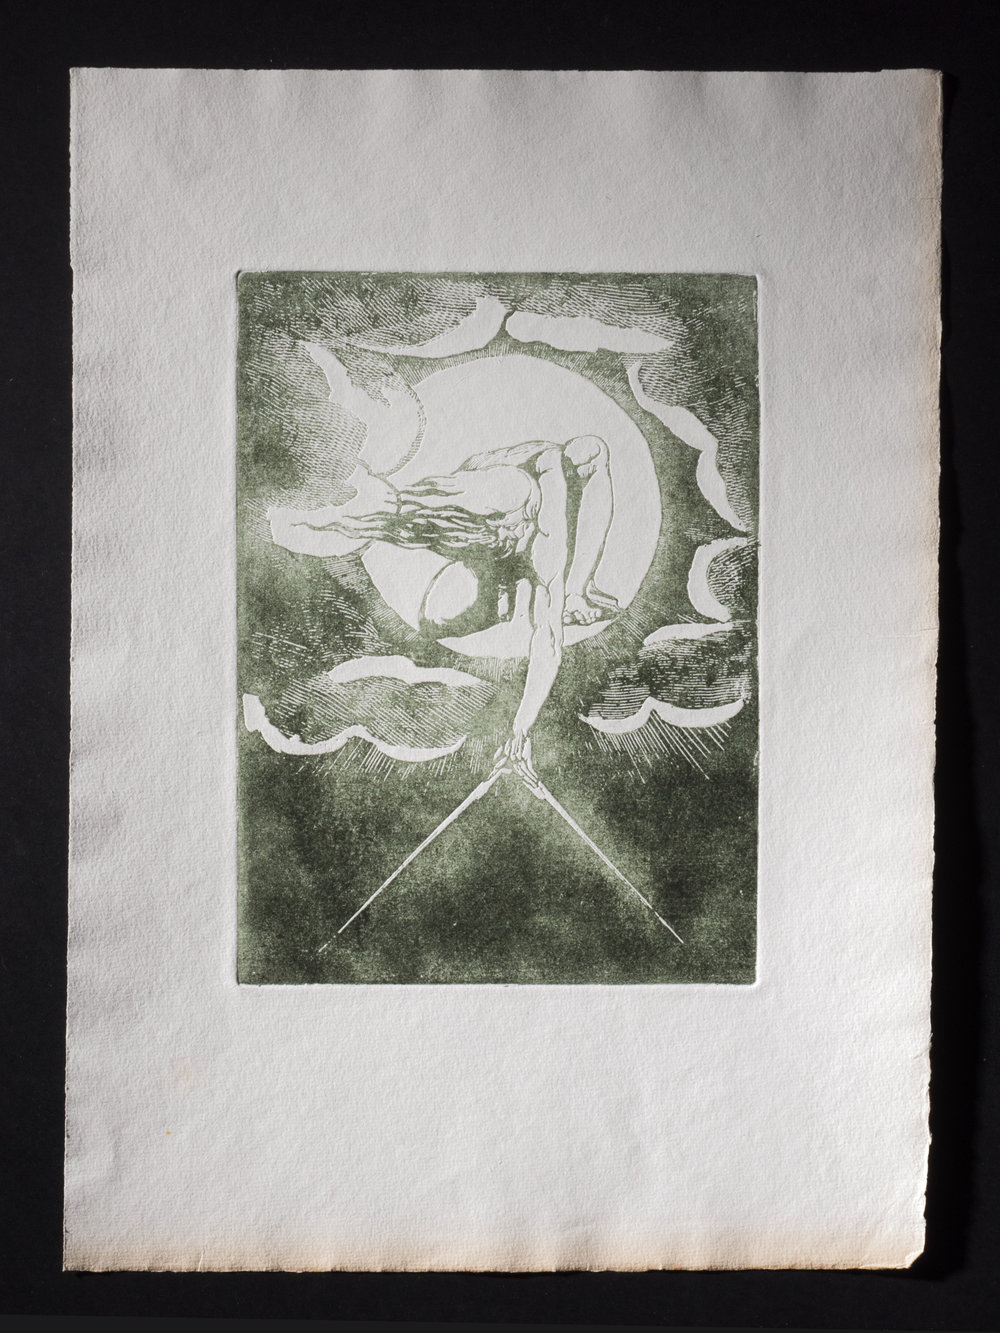 Copy of Frontispiece full page printed in green ink